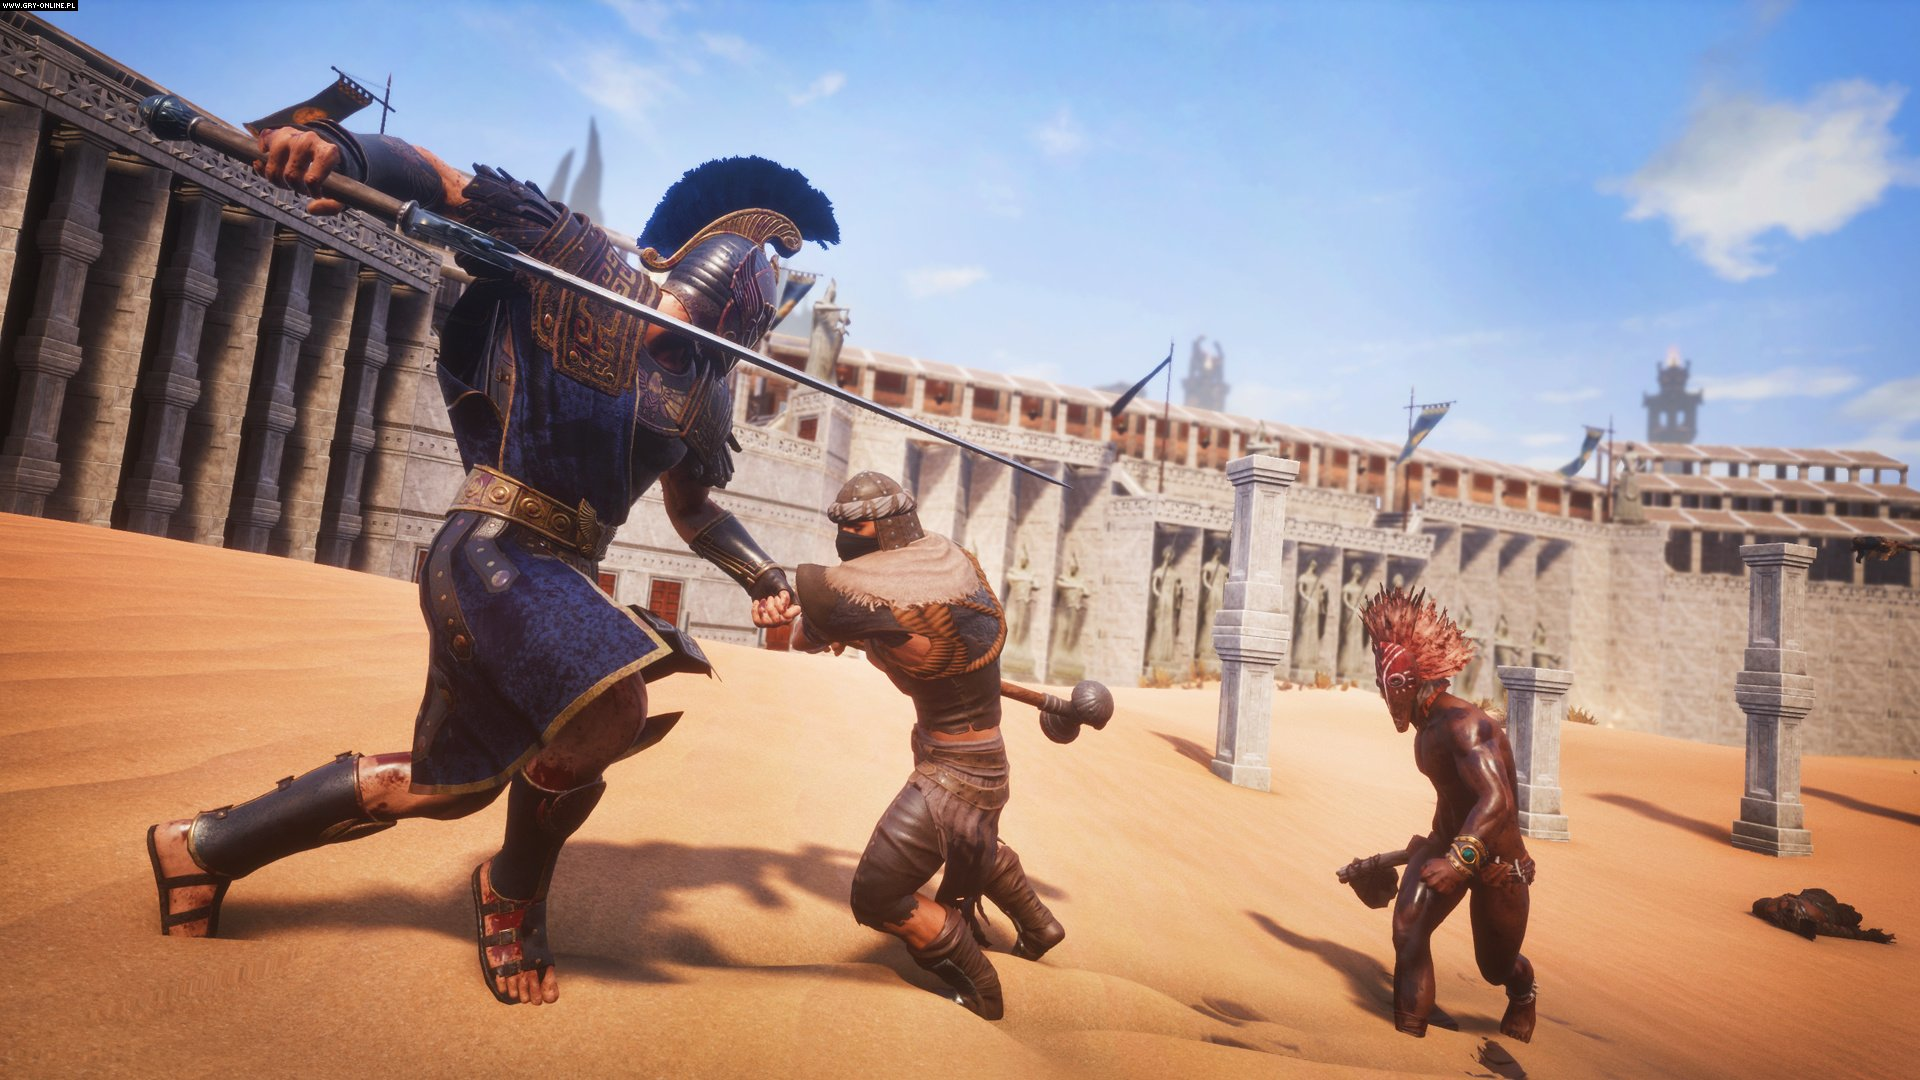 Conan Exiles PC, PS4, XONE Games Image 39/163, FunCom, Deep Silver / Koch Media